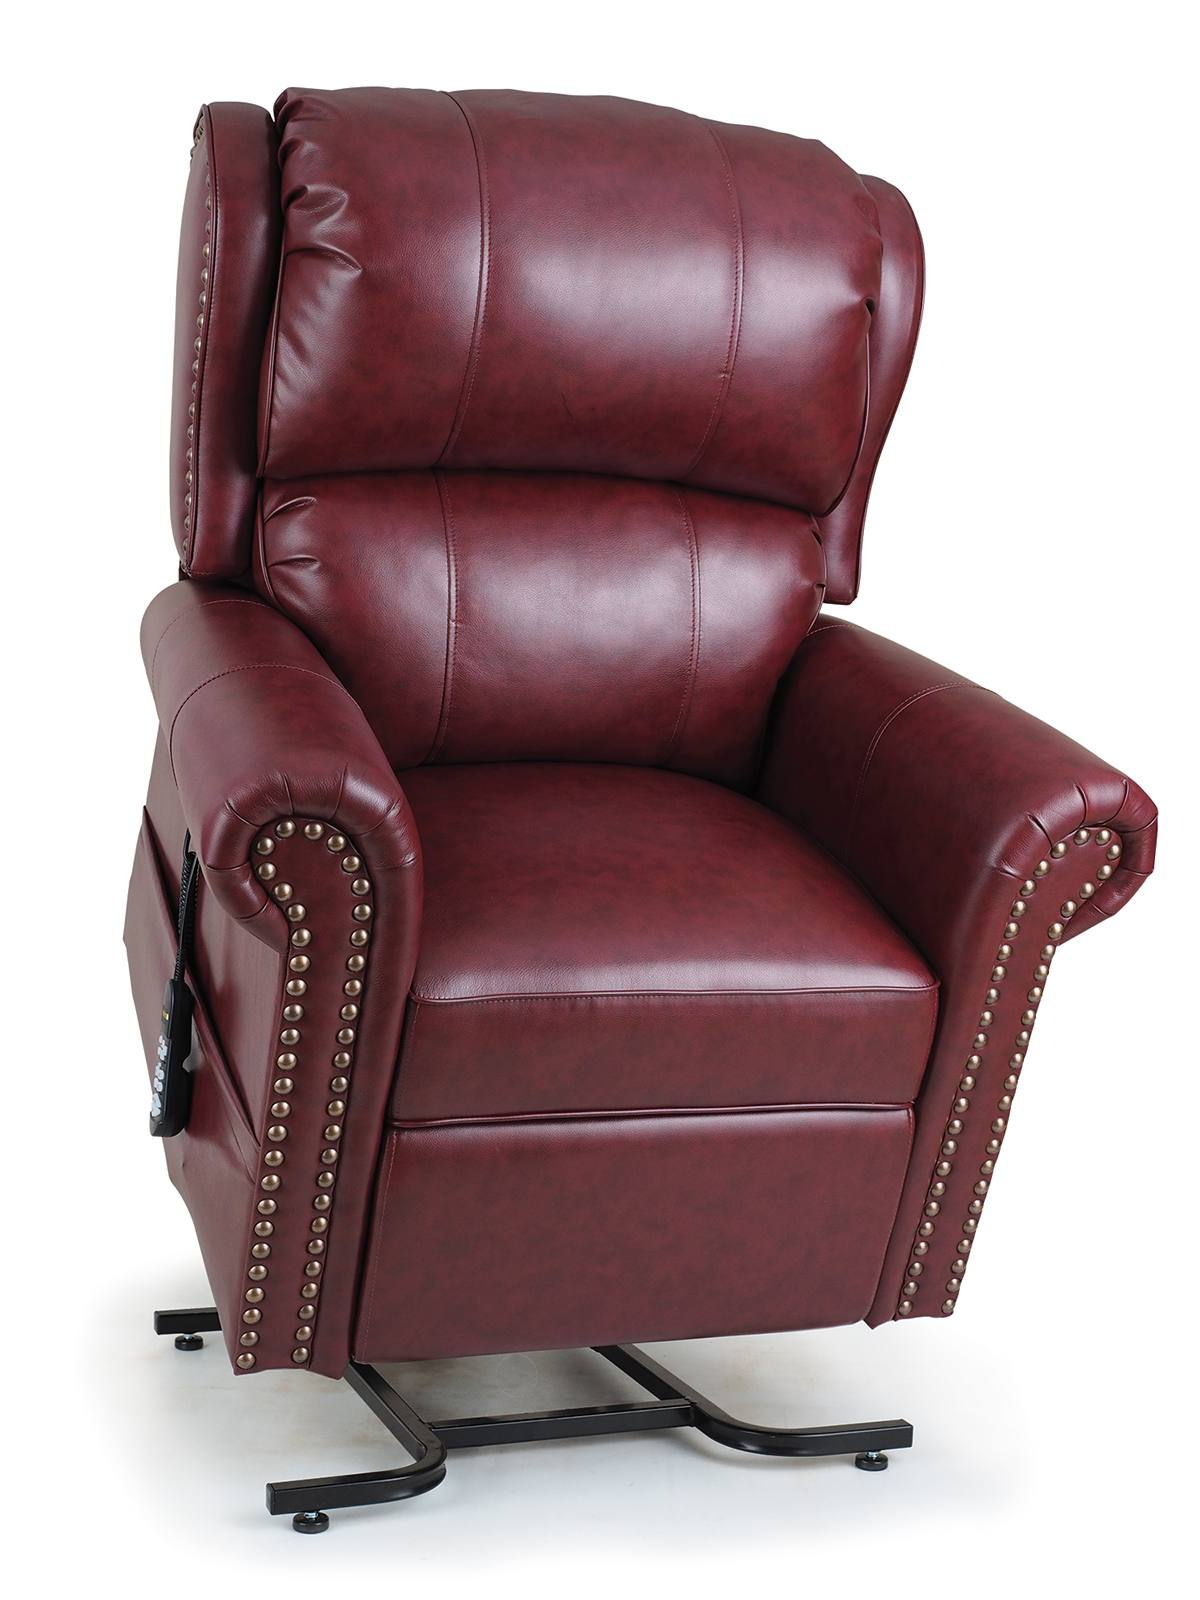 PUB LIFT CHAIR for sale in Jacksonville FL